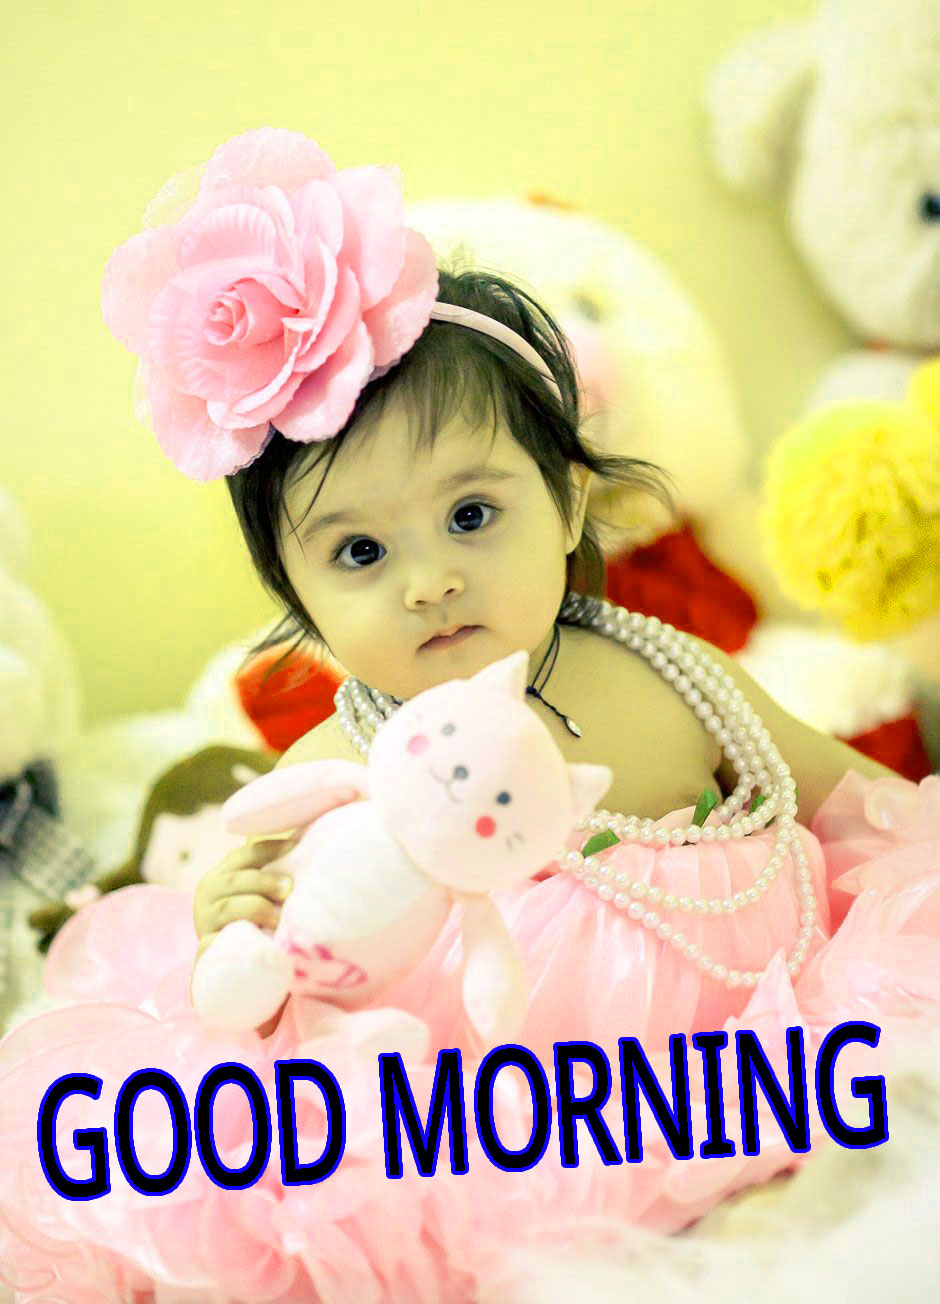 Good Morning Indian Cute baby Girls Boys images Pics  Wallpaper Pictures Download